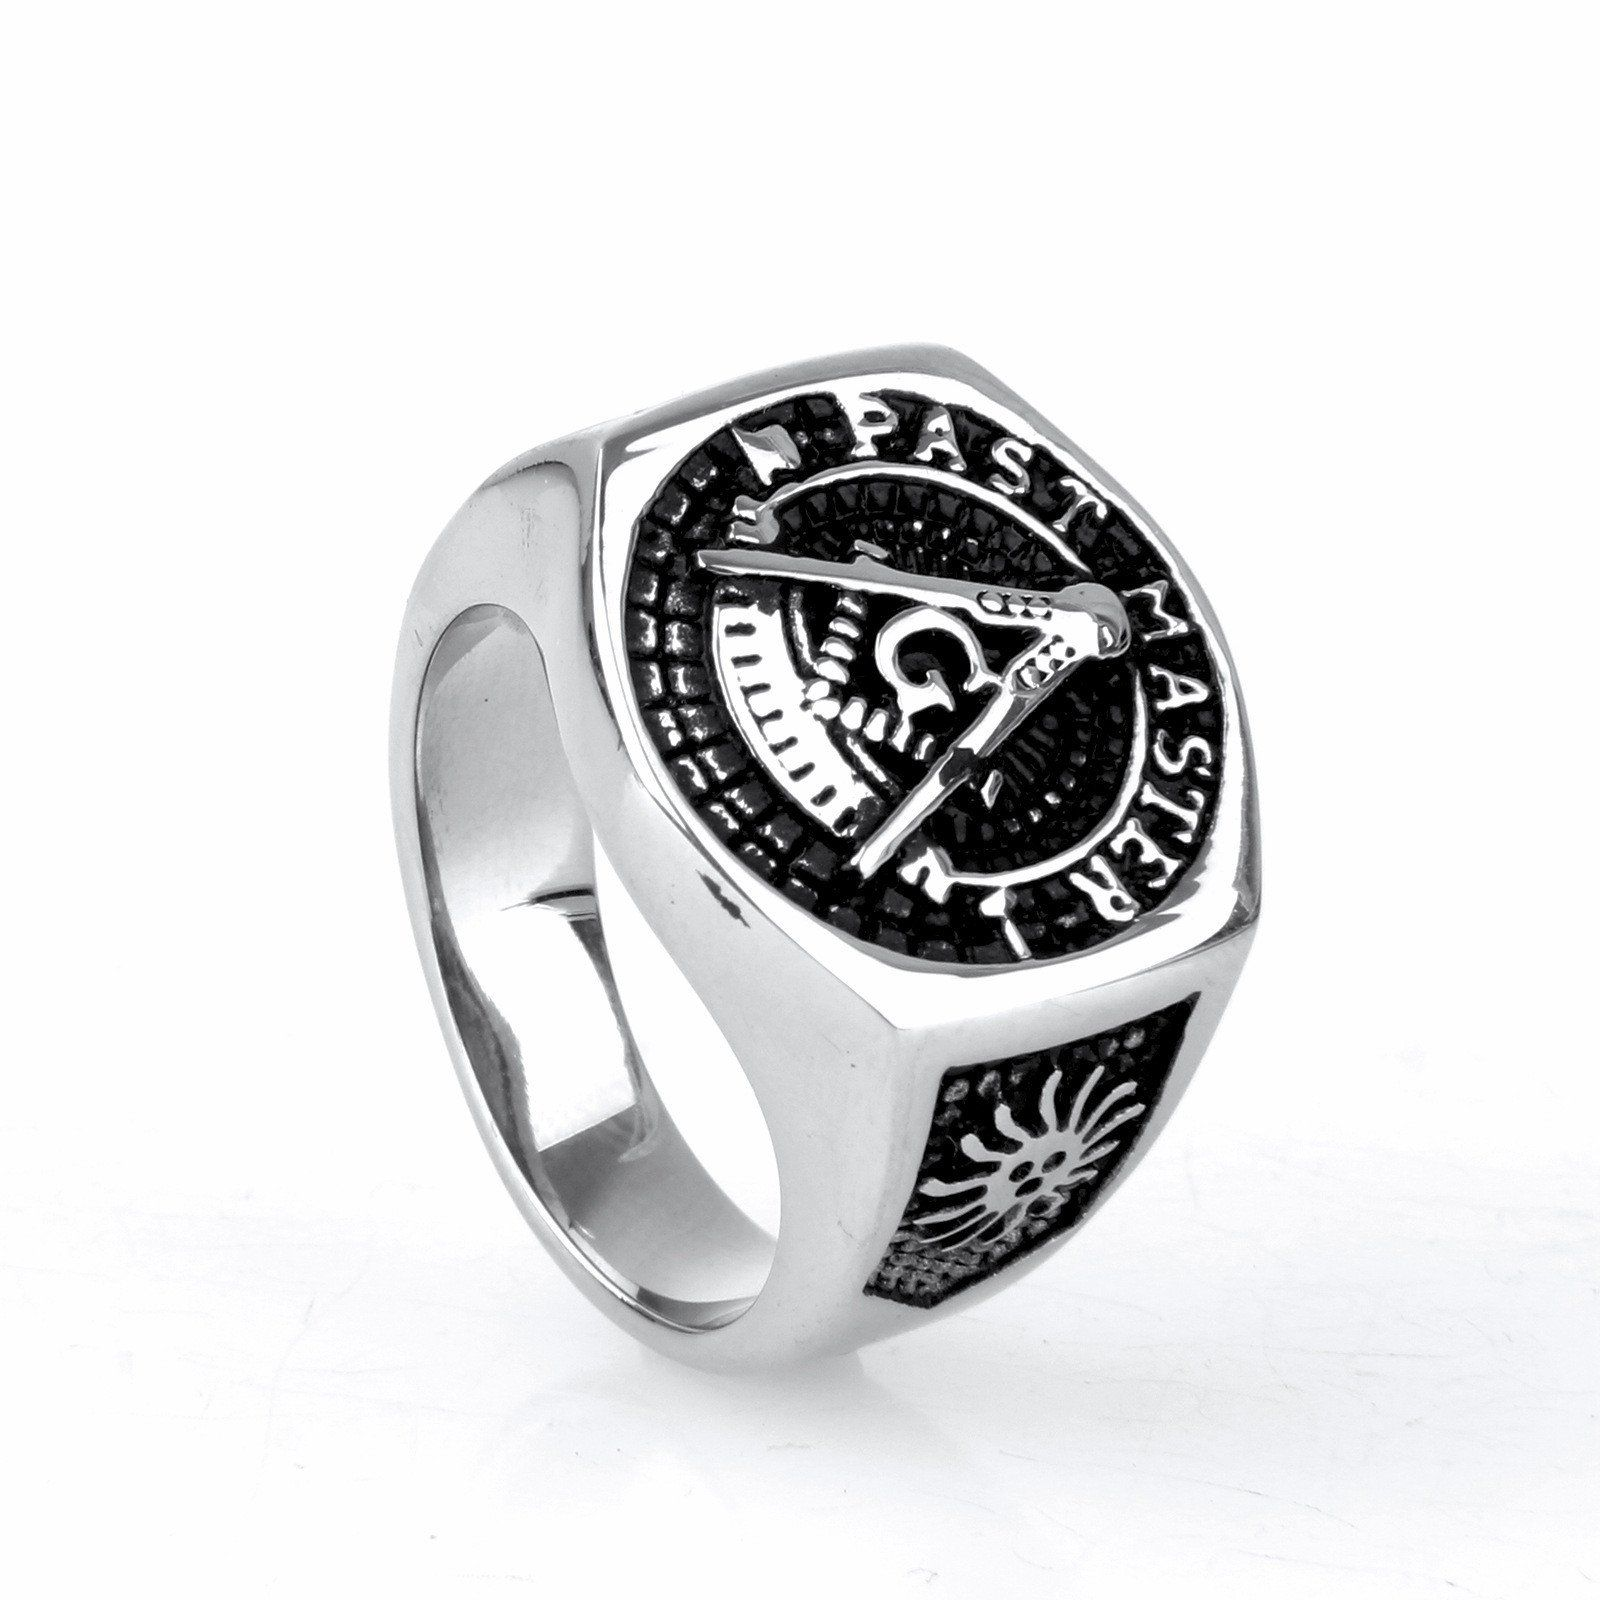 PAST MASTER MASONIC RING